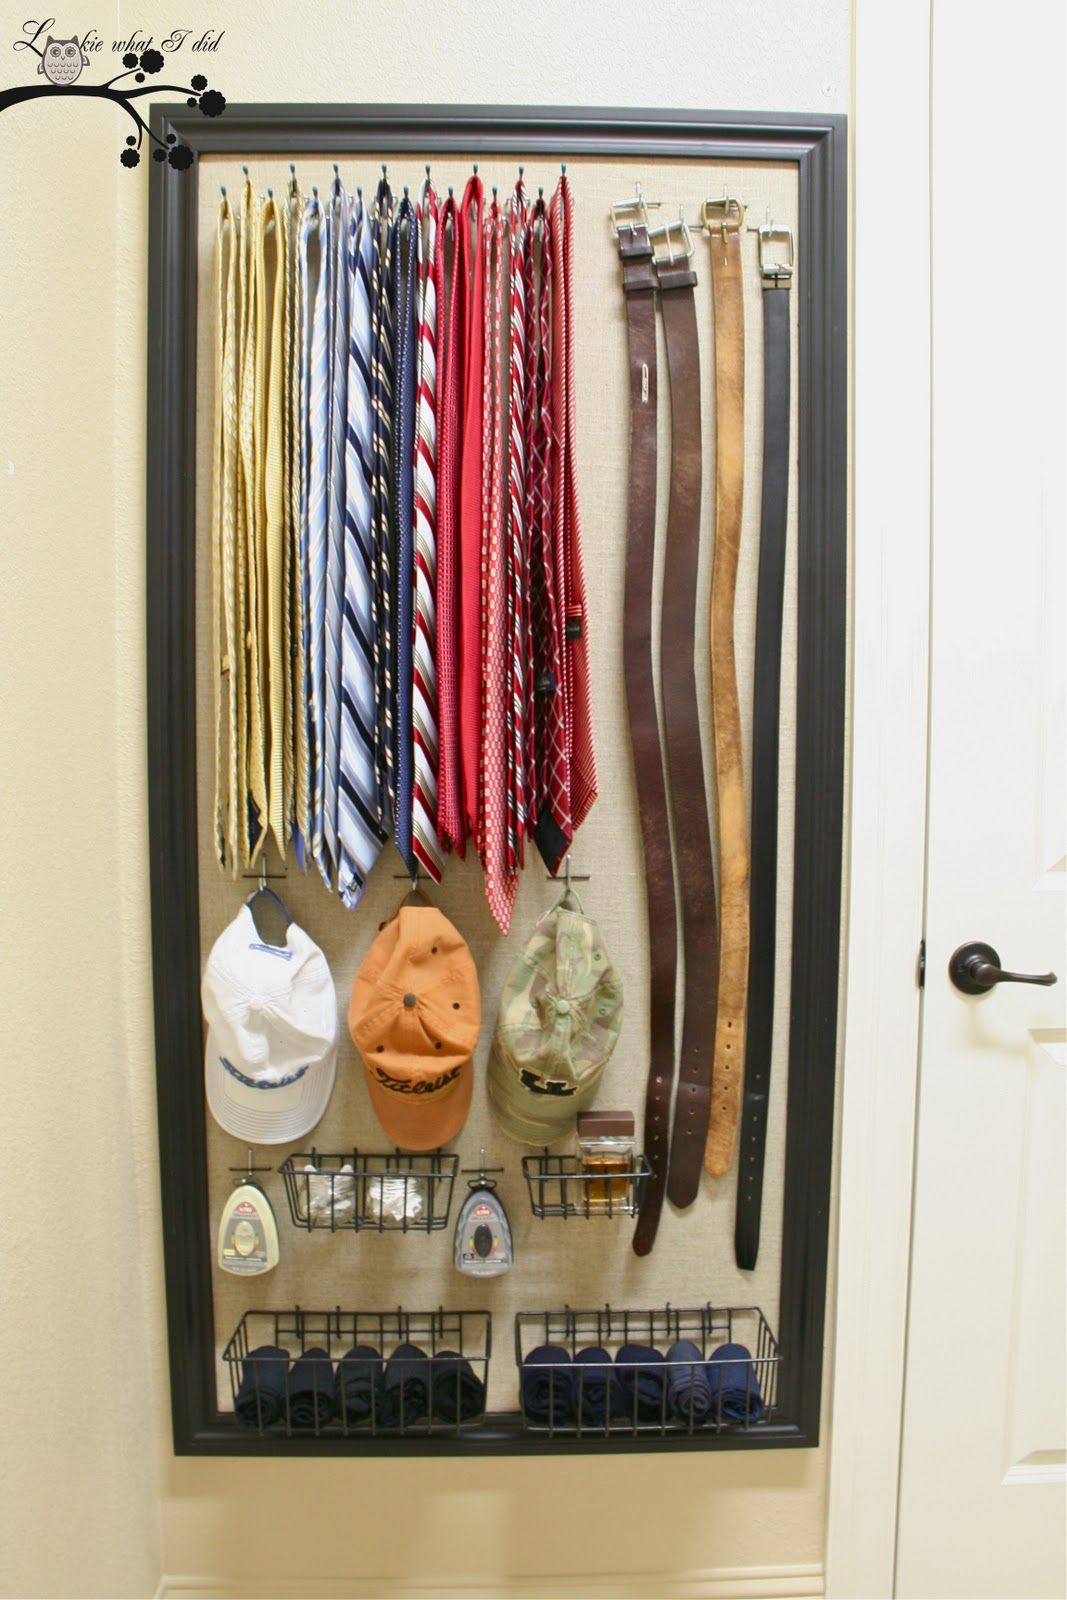 Lookie What I Did: A Closet Organizer For Him: Cloth Covered Pegboard,  Hooks For Ties, Belts, Shoe Polishers, Hats, Baskets For Socks, Laundry  Stubs, ...